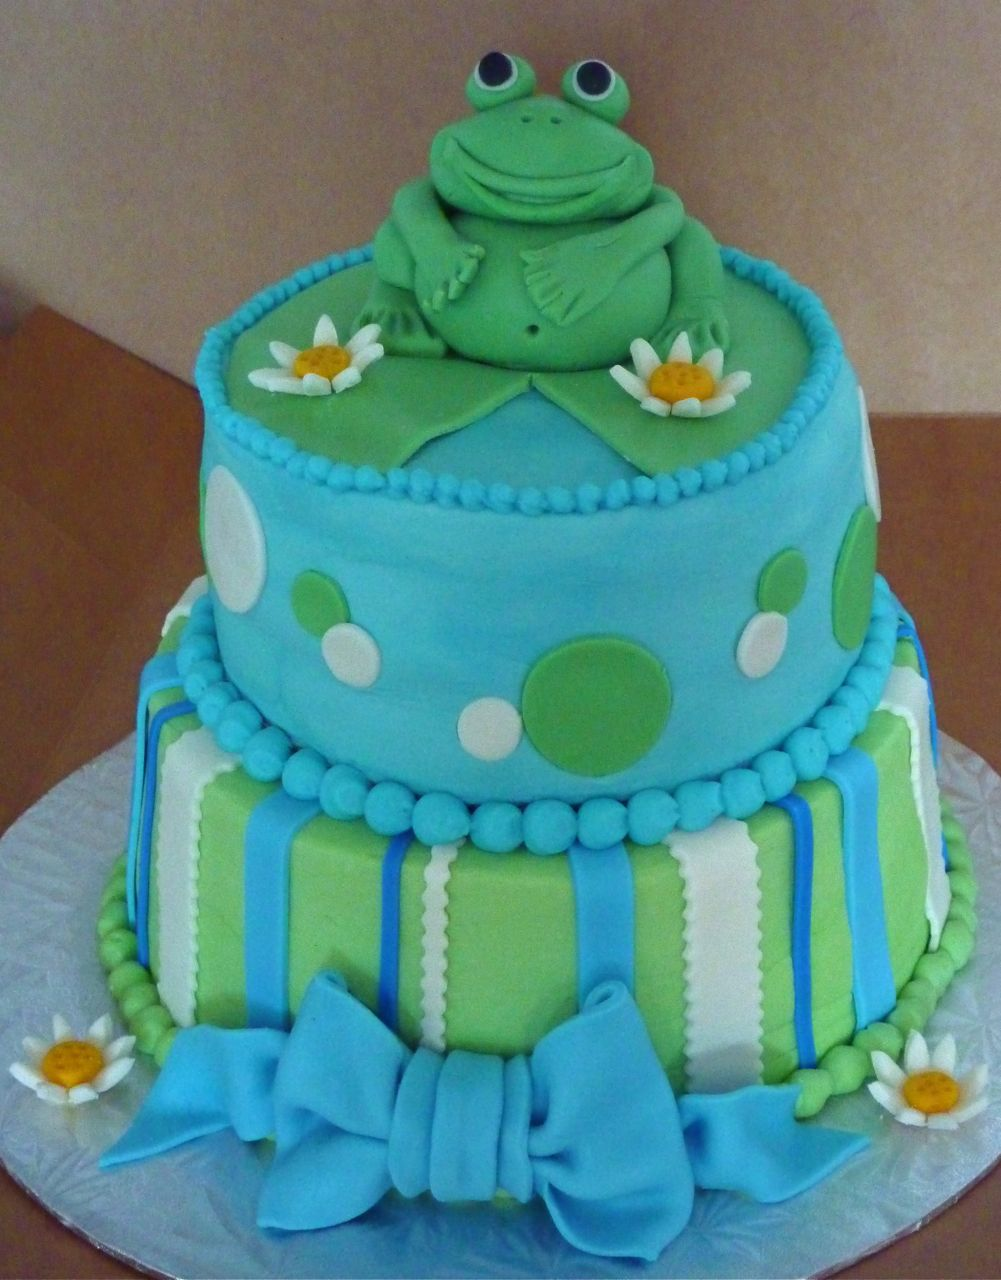 Bakery Showcase: Bakery Showcase » Celebration Cakes » Froggy Baby Shower  Cake